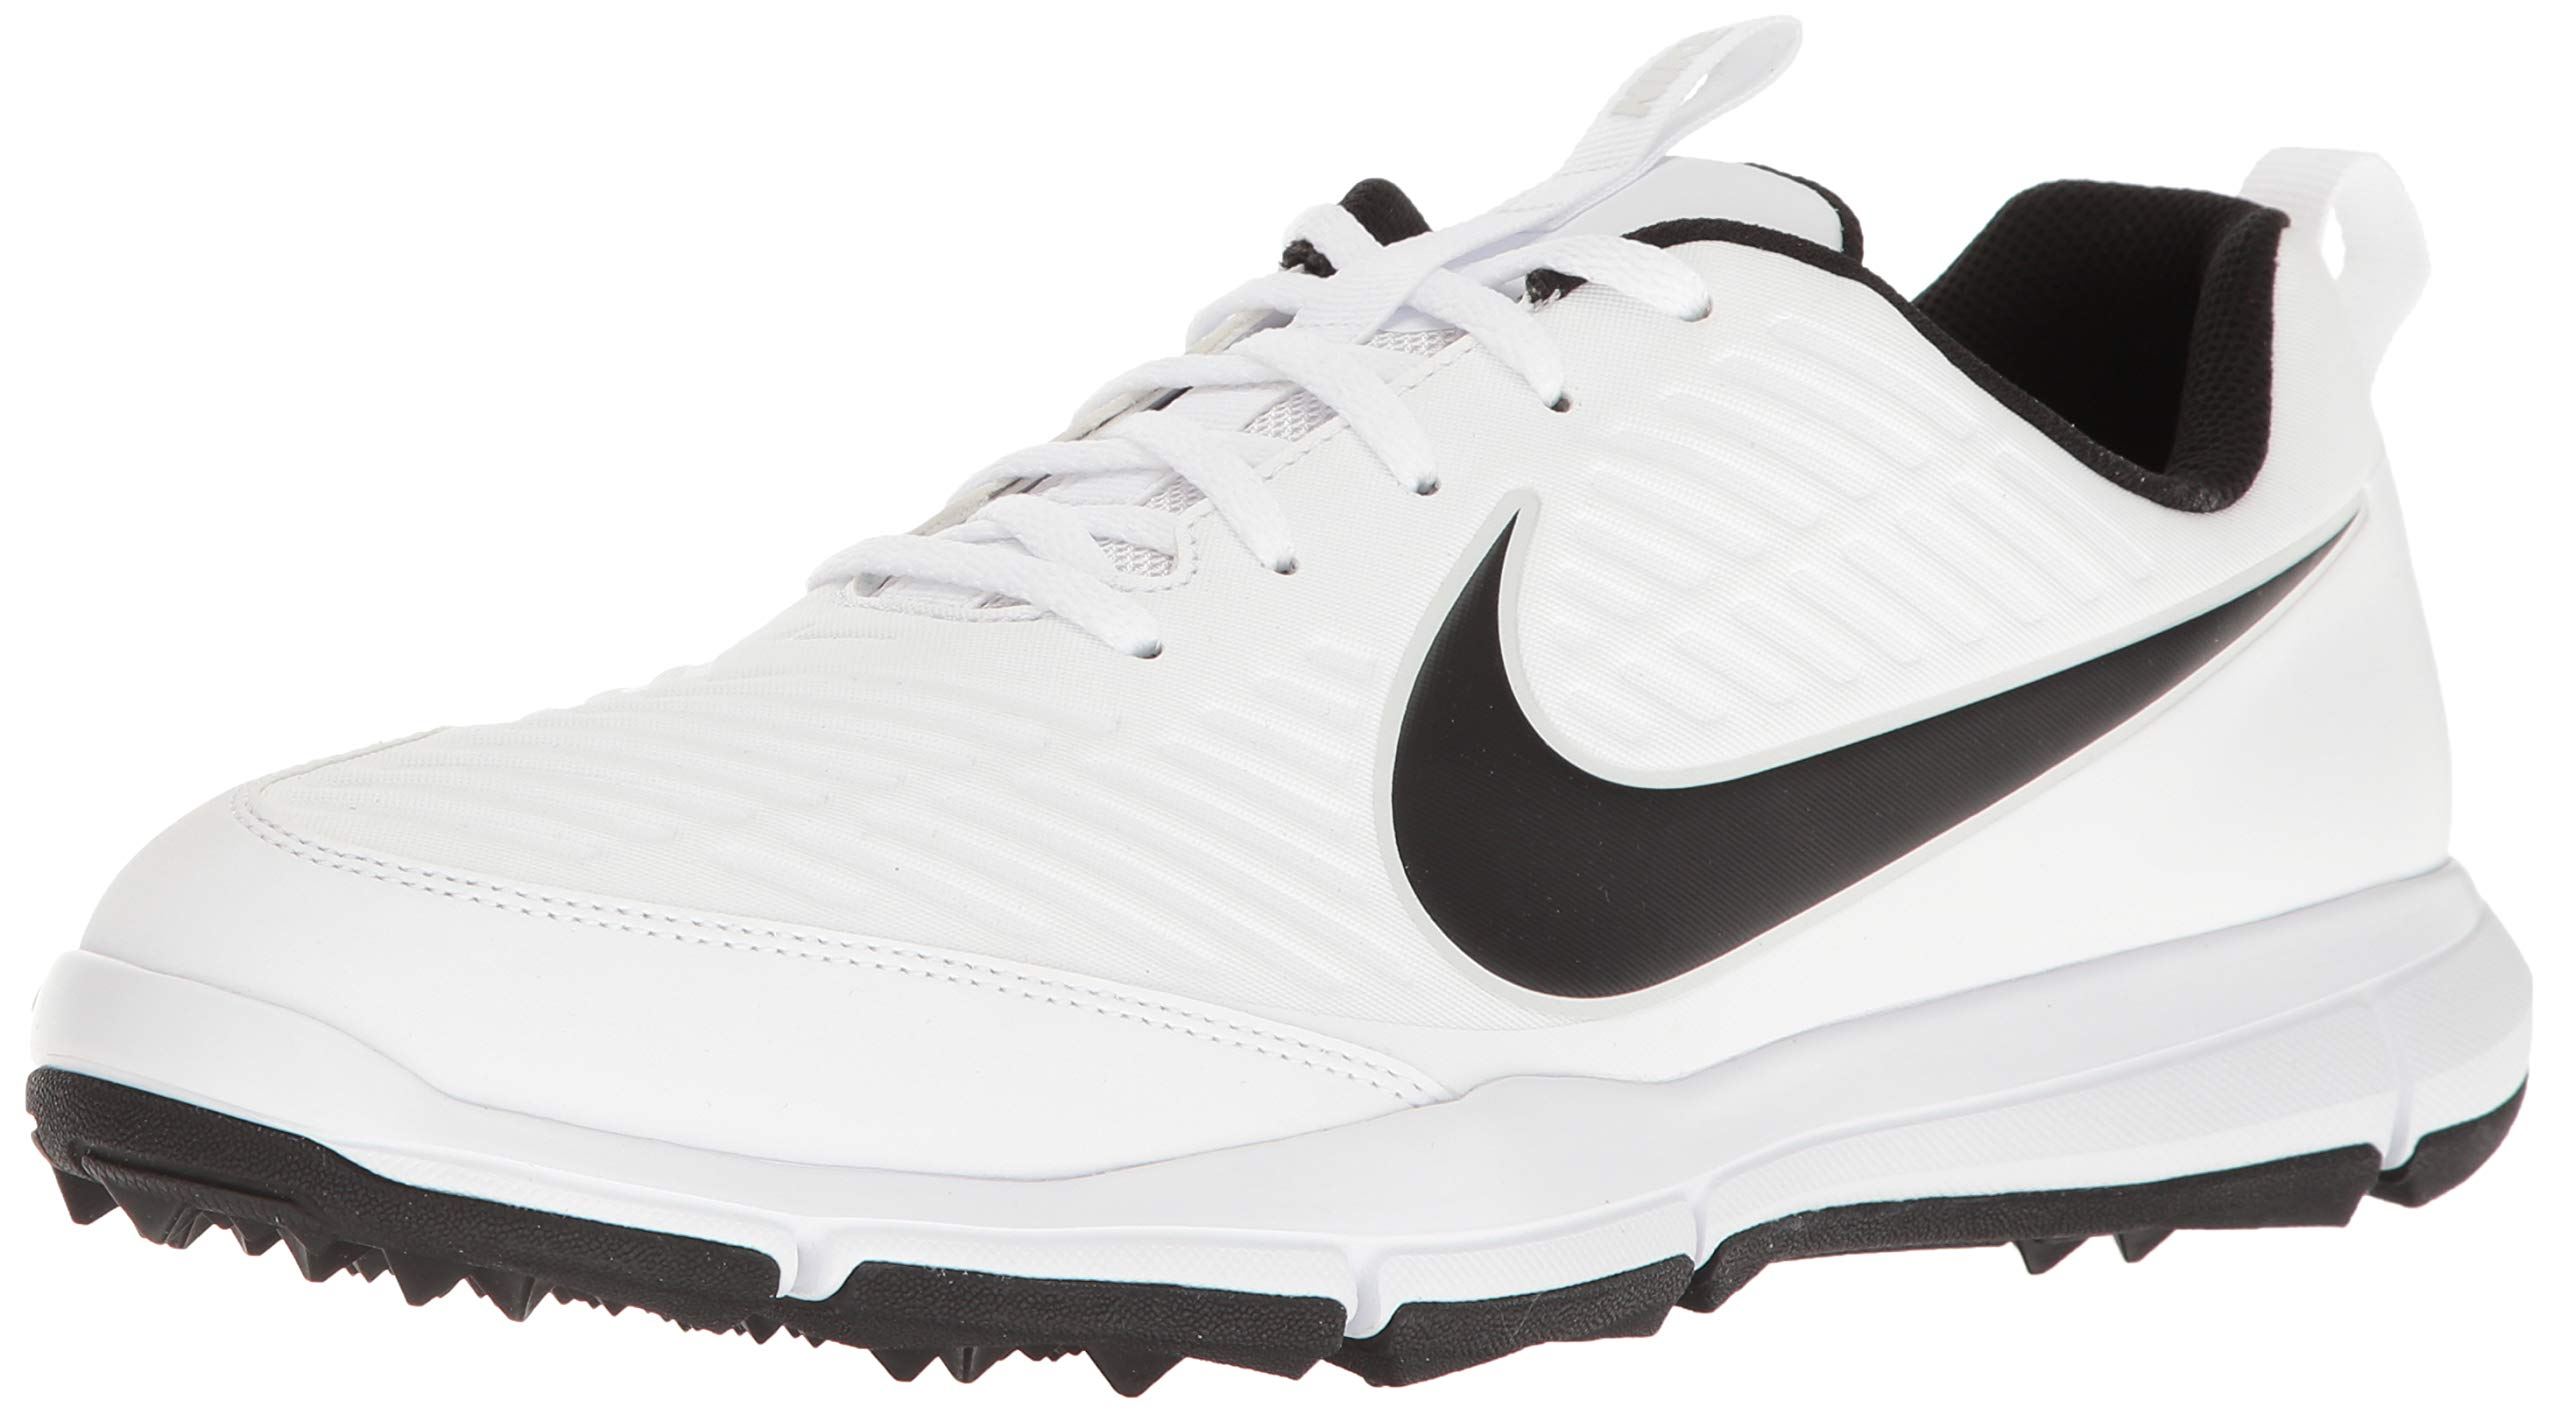 Nike Men's Explorer 2 Golf Shoe, White/Black 7.5 Wide US